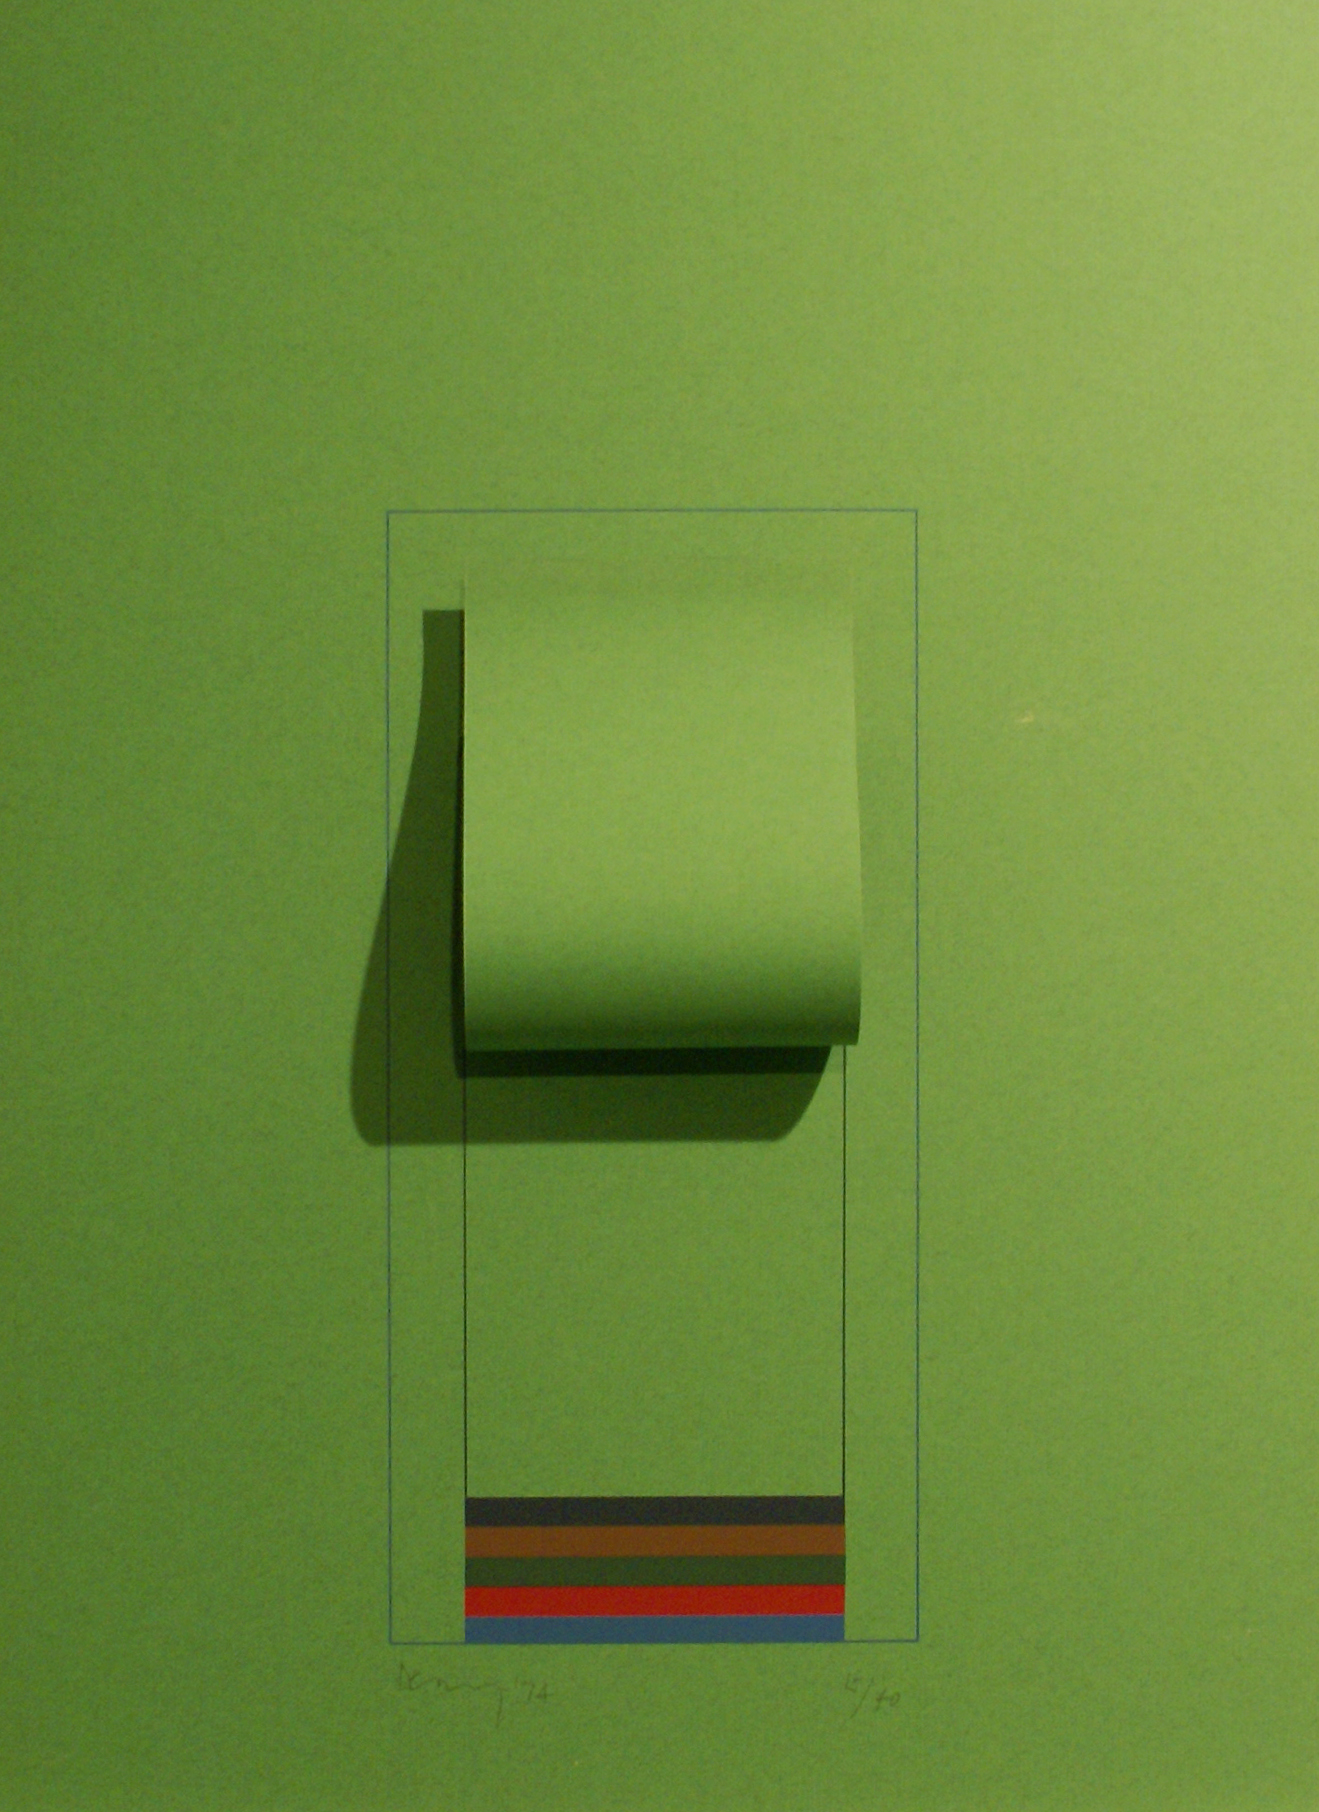 Mirrors (Bright Green), 1974